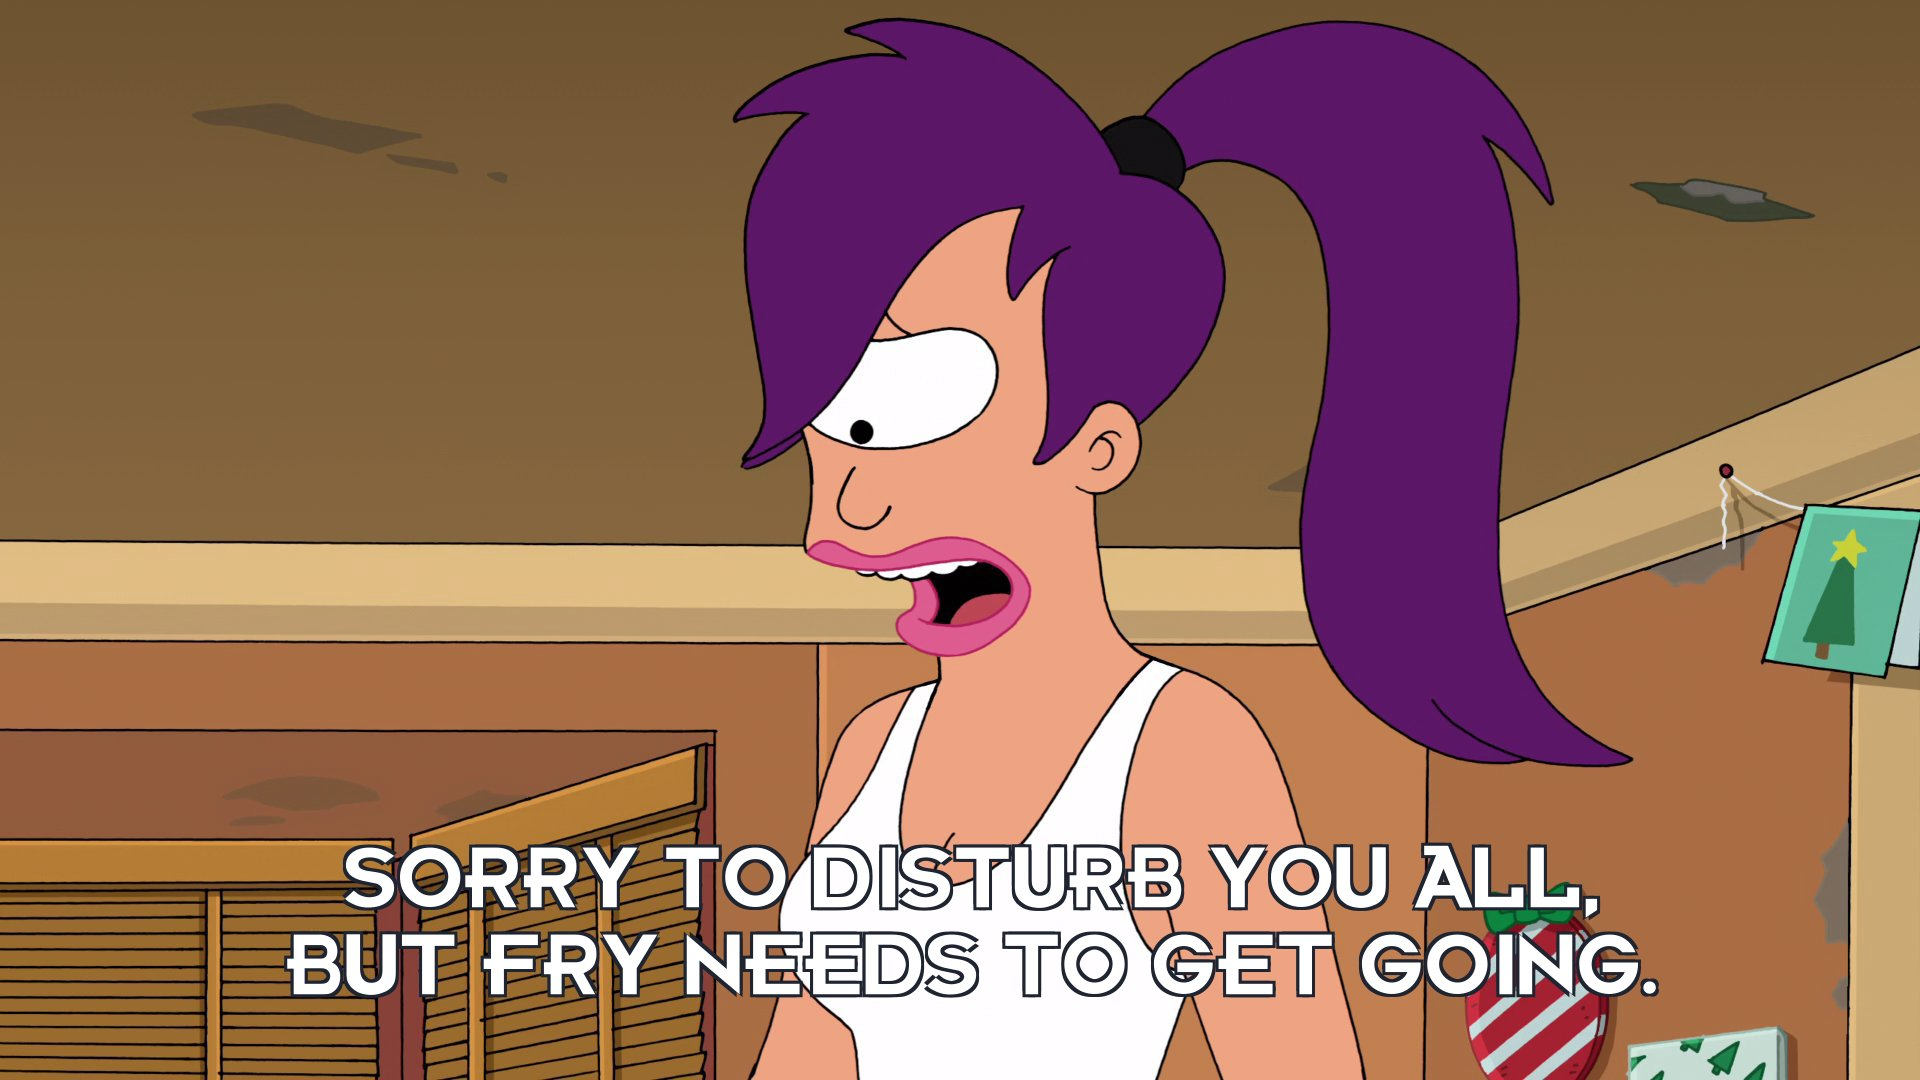 Turanga Leela: Sorry to disturb you all, but Fry needs to get going.